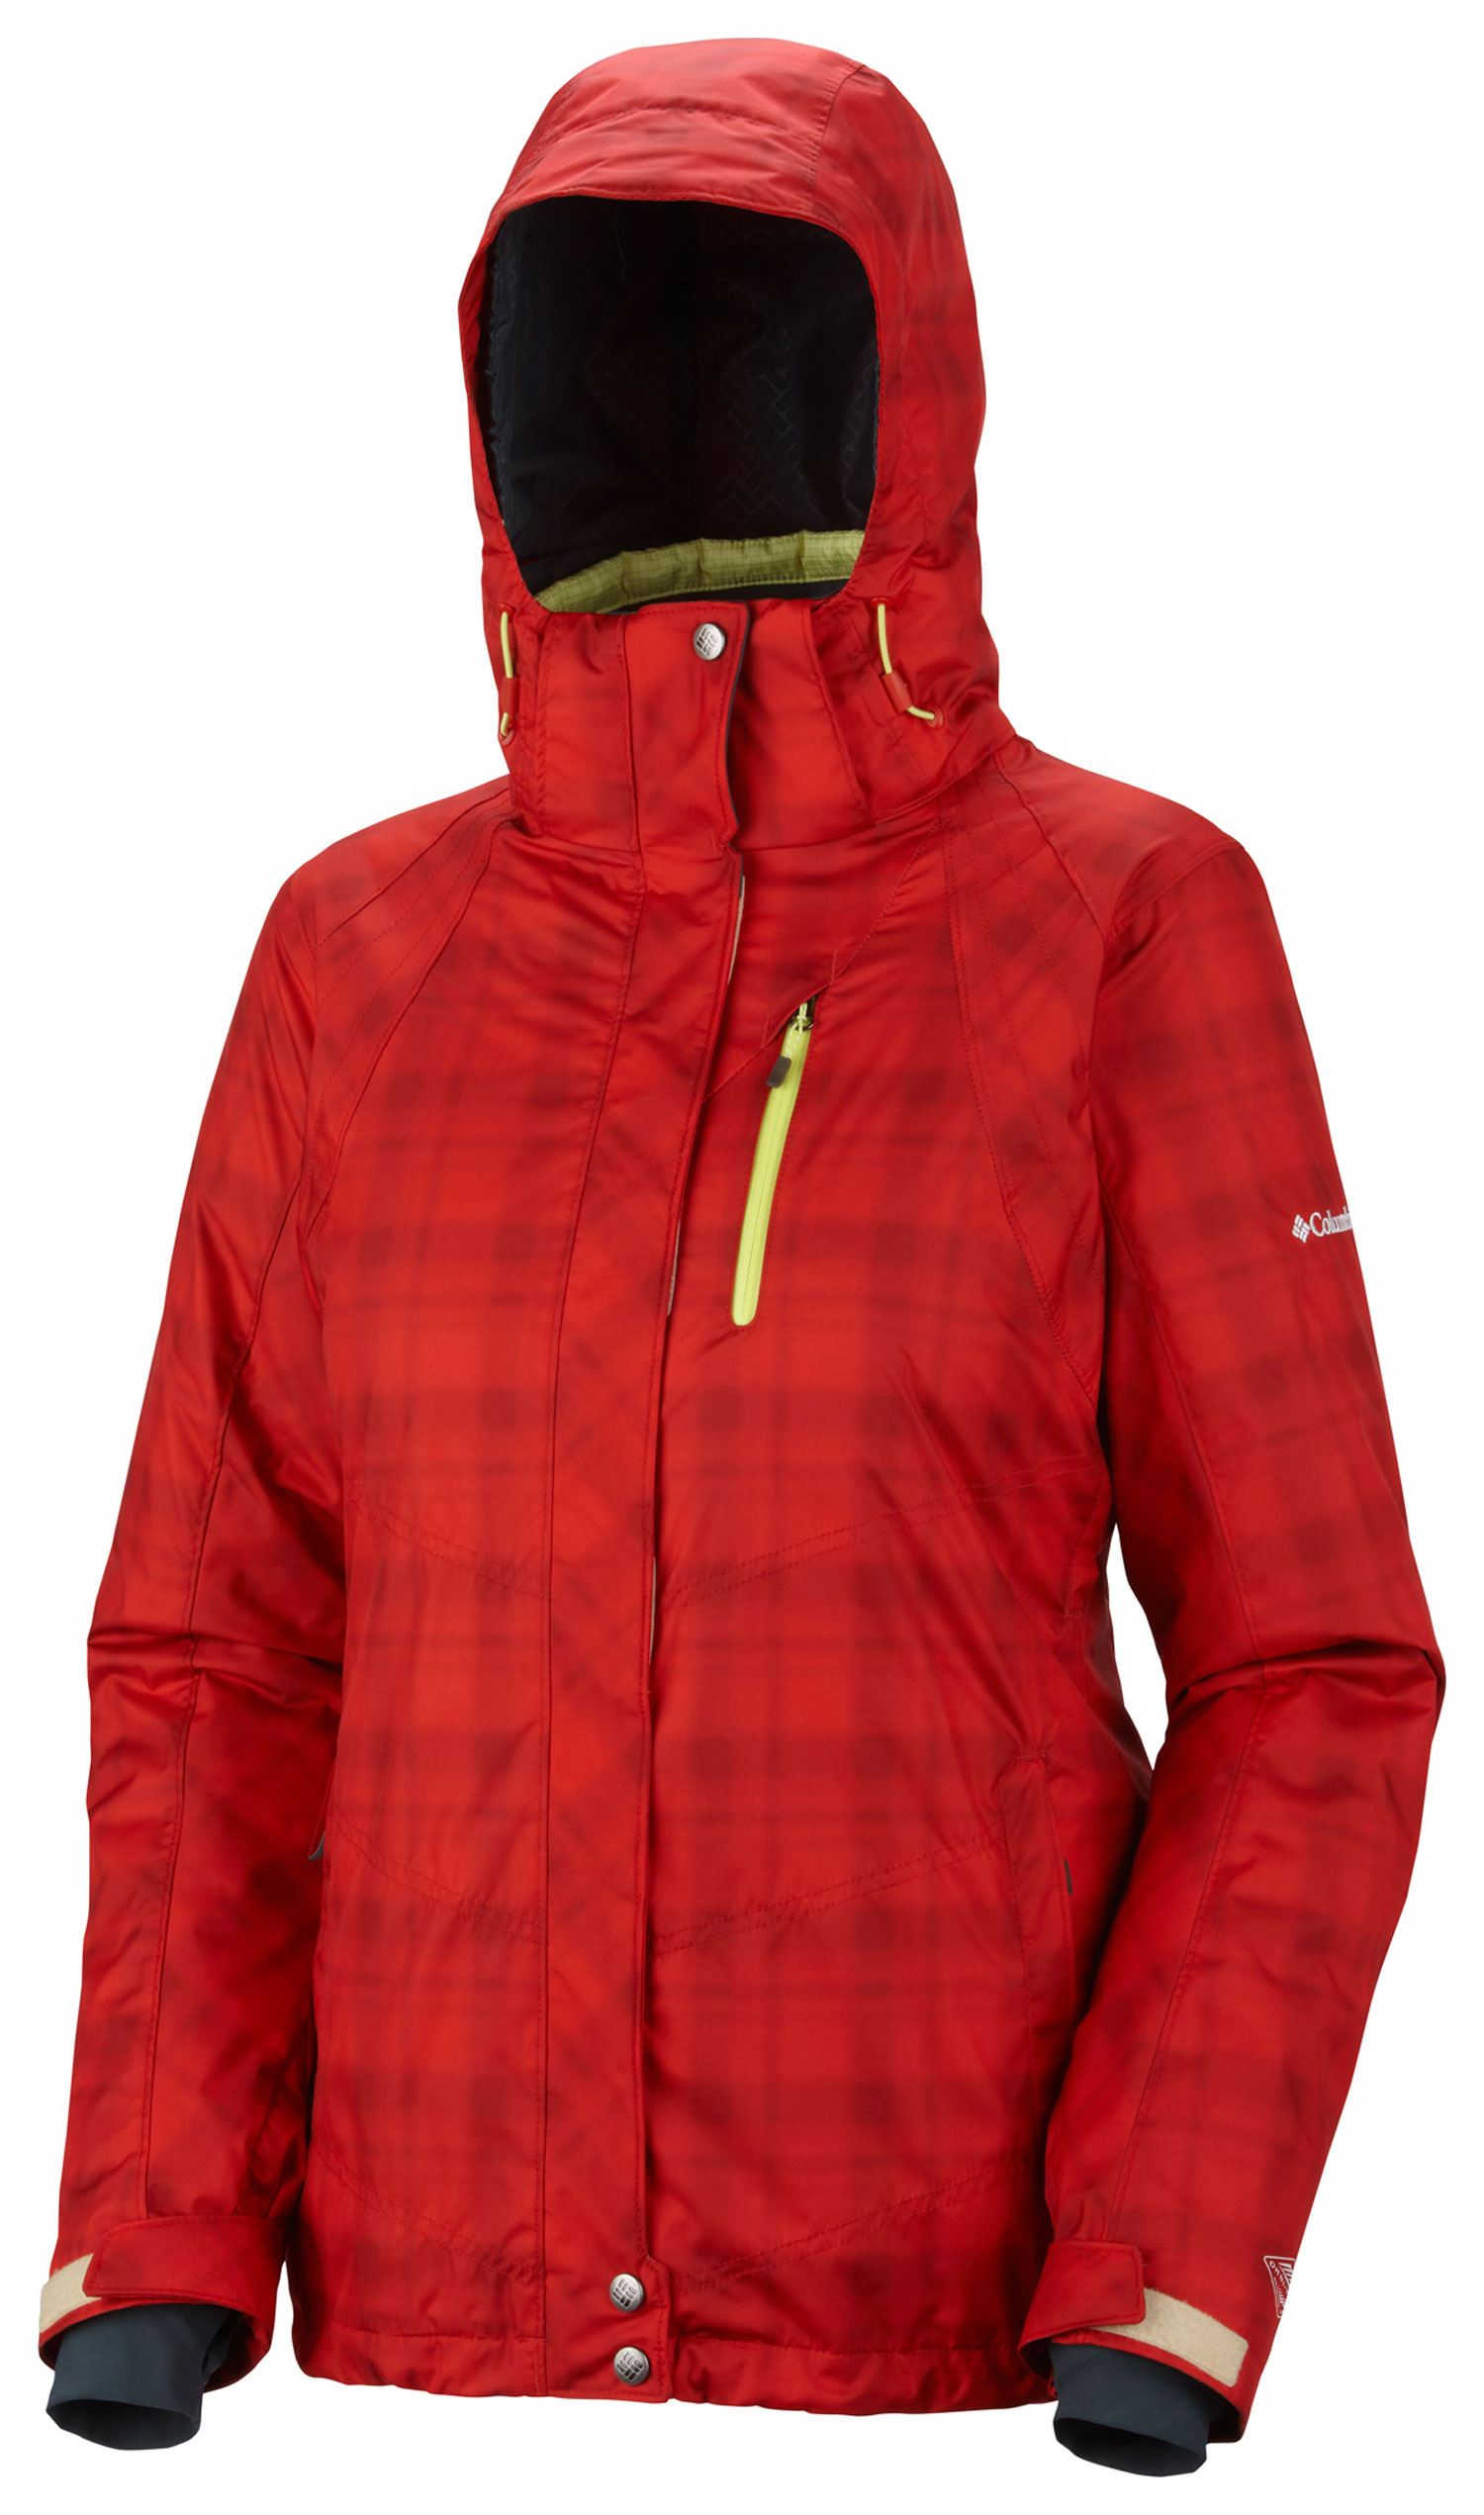 Ski Key Features of the Columbia Whirlibird Interchange Ski Jacket: FABRIC Shell: 100% nylon Legacy twill, 100% polyester Printed Plaid. Lining: 100% nylon embossed taffeta. Liner: 100% polyester Fine Line Plaid DP ripstop. Lining: 100% polyester Thermal Reflective. Insulation: 50% Polyester/50% recycled polyester OH, 100g. FIT Active Omni-Heat™ thermal reflective and insulated liner Omni-Tech™ waterproof/breathable fully seam sealed Omni-Shield™ advanced repellency liner Zip-in and 3-point Interchange System Removable, adjustable storm hood Underarm venting Drawcord adjustable hem Adjustable, snap back powder skirt Interior security pocket Waterproof zip-closed pockets Zip-closed pockets Media and goggle pocket Thumb holes Adjustable outer cuff-inner comfort cuff - $230.00